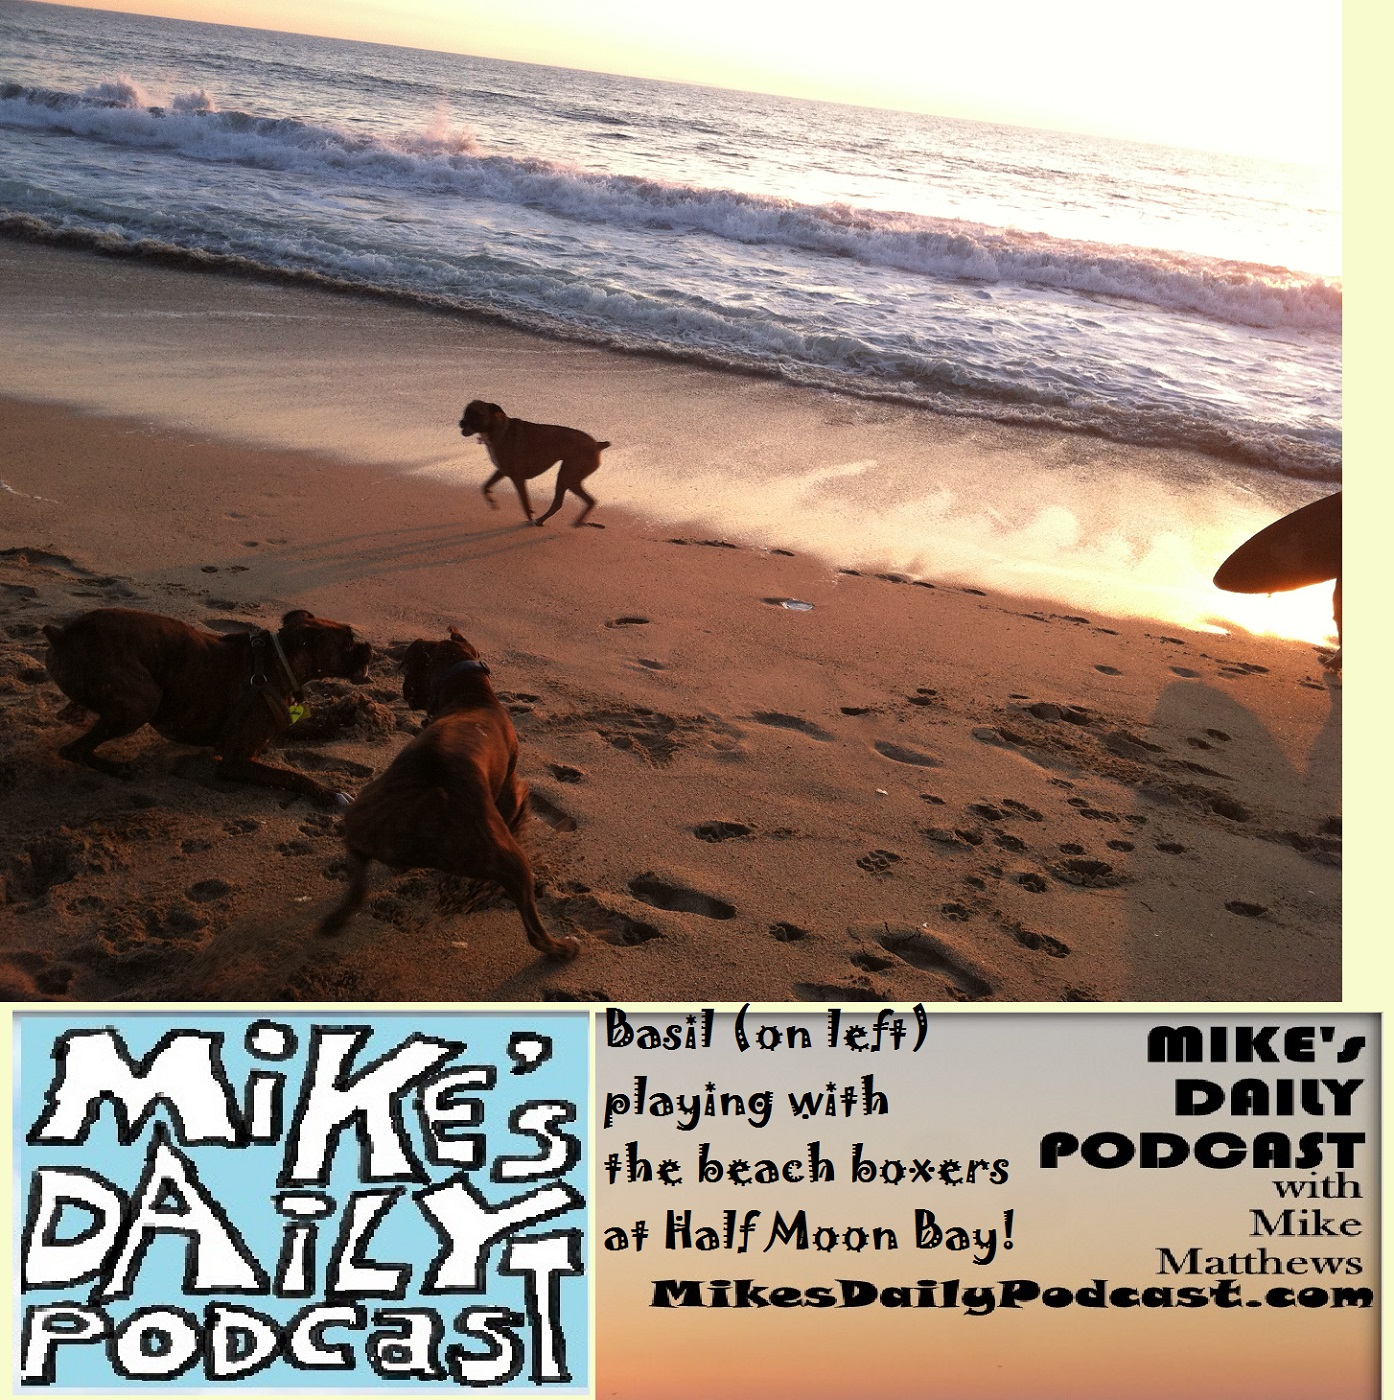 MIKEs DAILY PODCAST 1118 Half Moon Bay Boxers